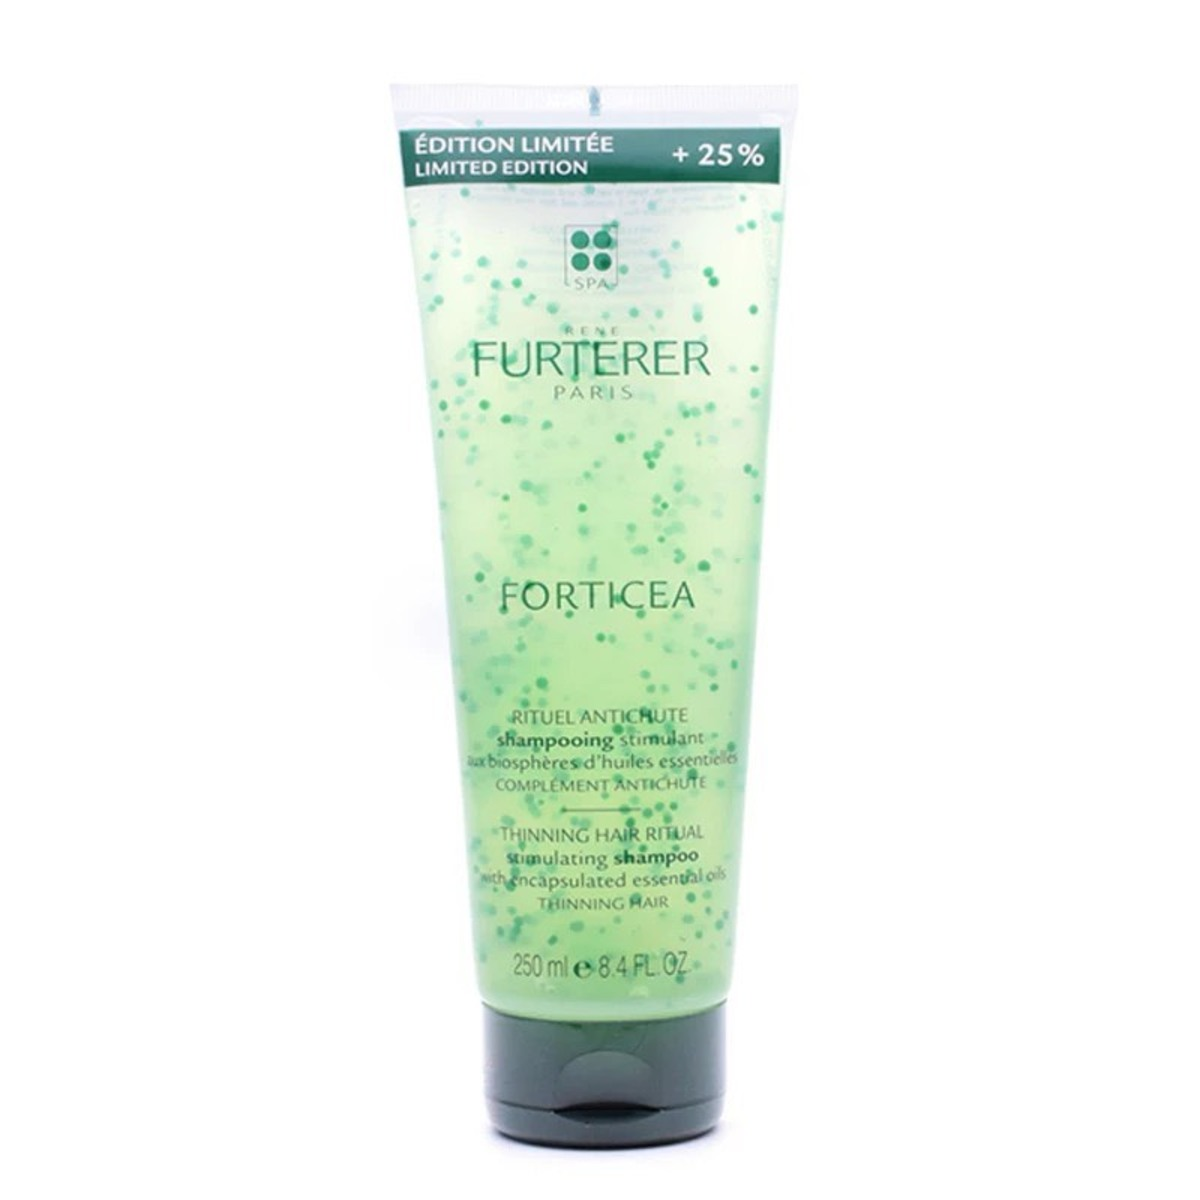 FORTICEA Stimulating Shampoo (25%+ limited edition)